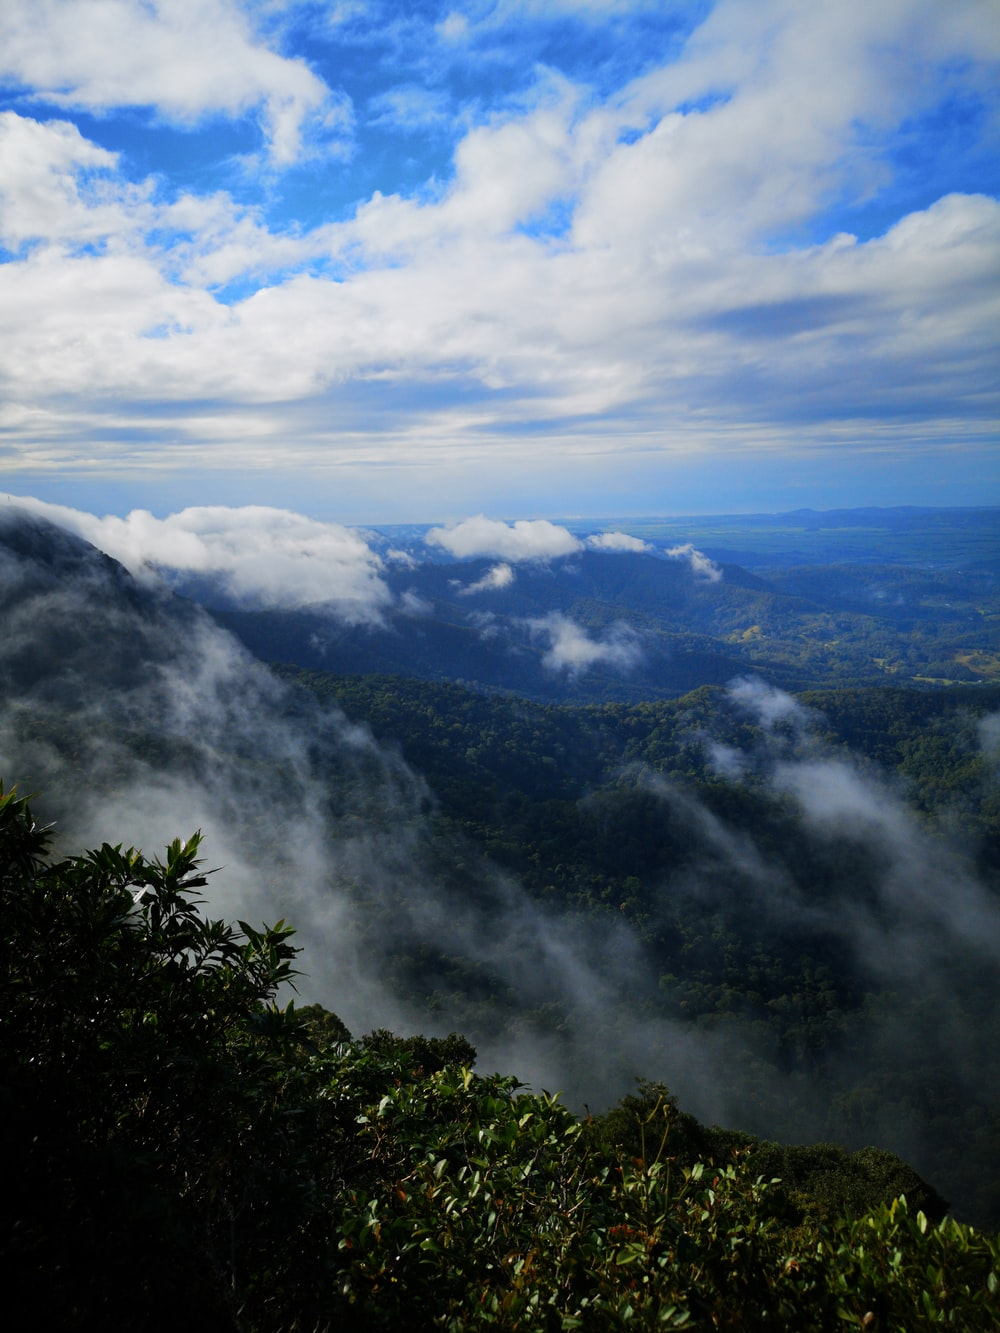 green trees on mountain under white clouds during daytime